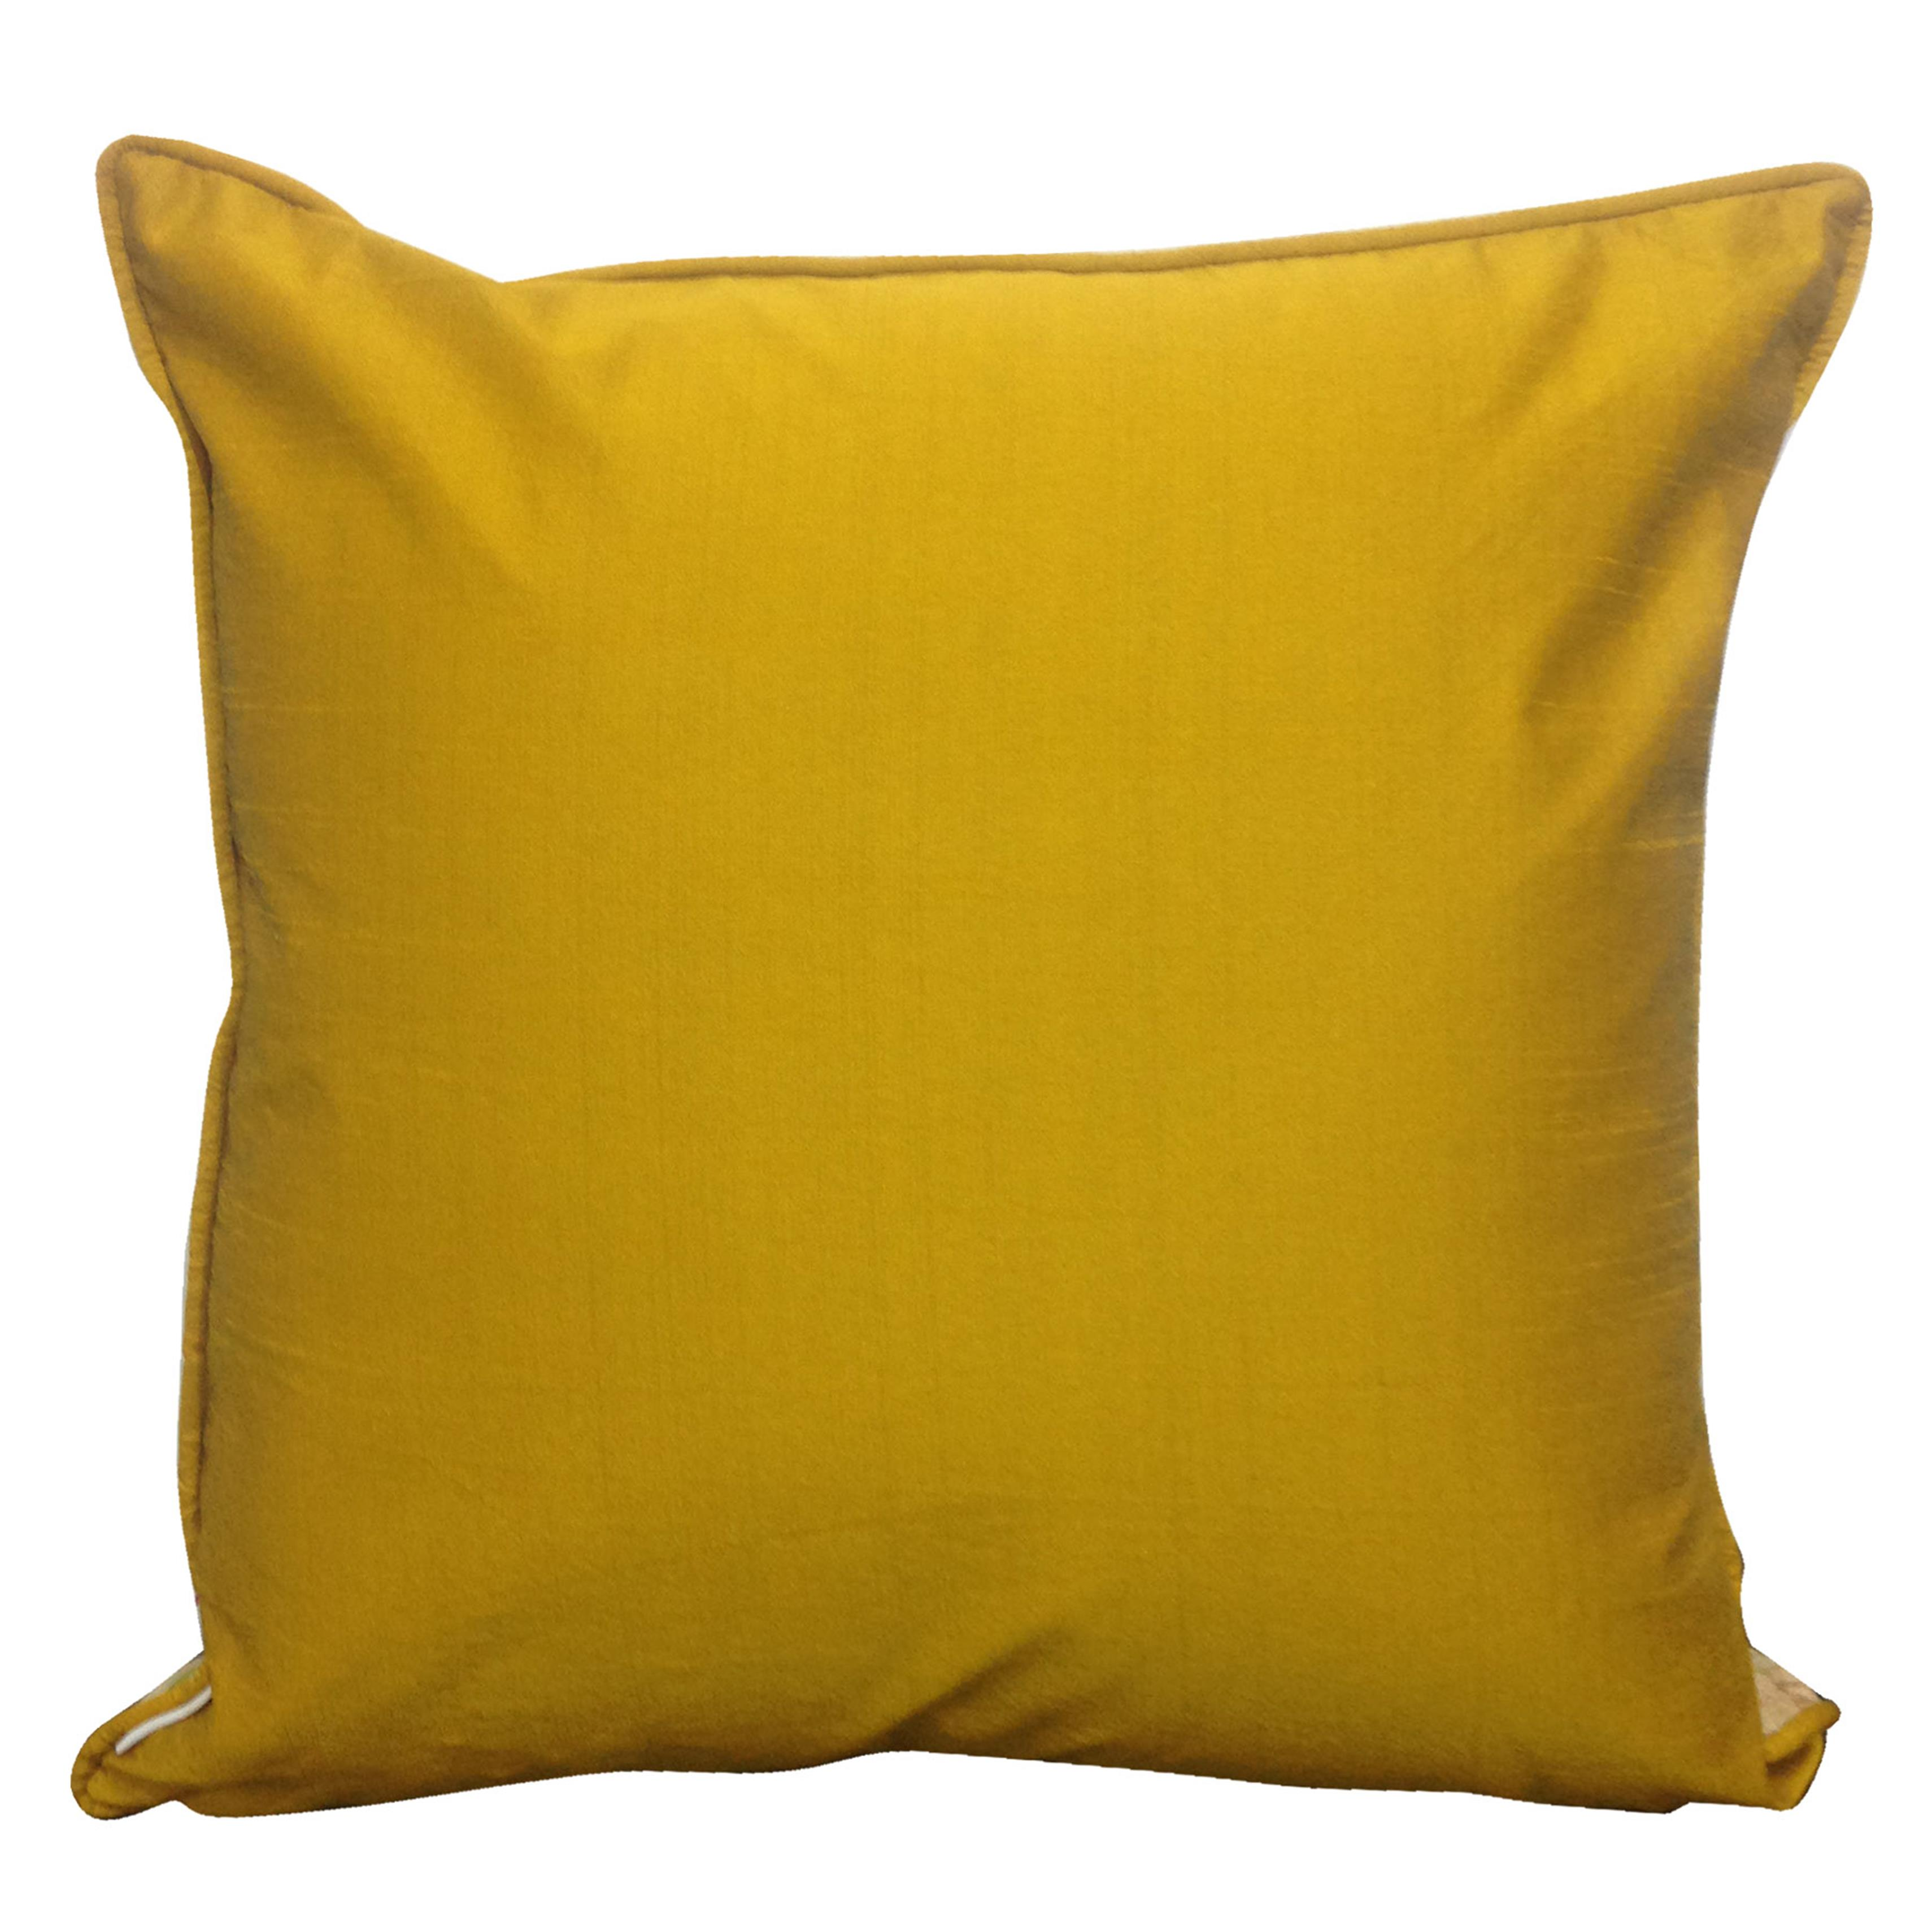 Sunflower Cushion Cover